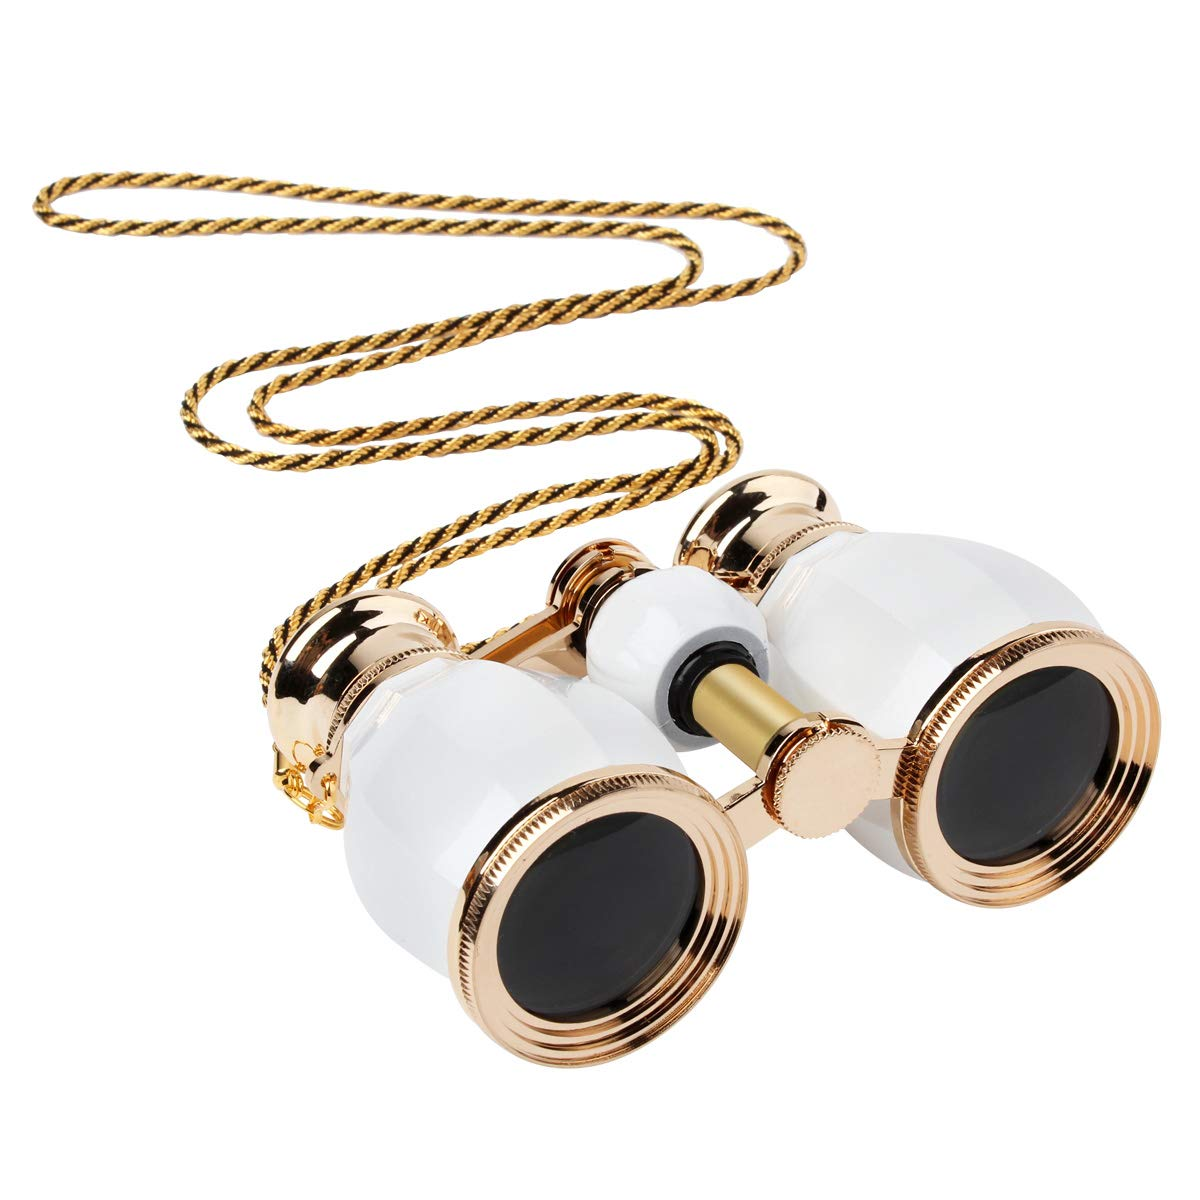 ESAKO Opera Glasses for Women Adults 4x30mm Compact Binoculars for Theater Concert with Removable Chain White by ESAKO